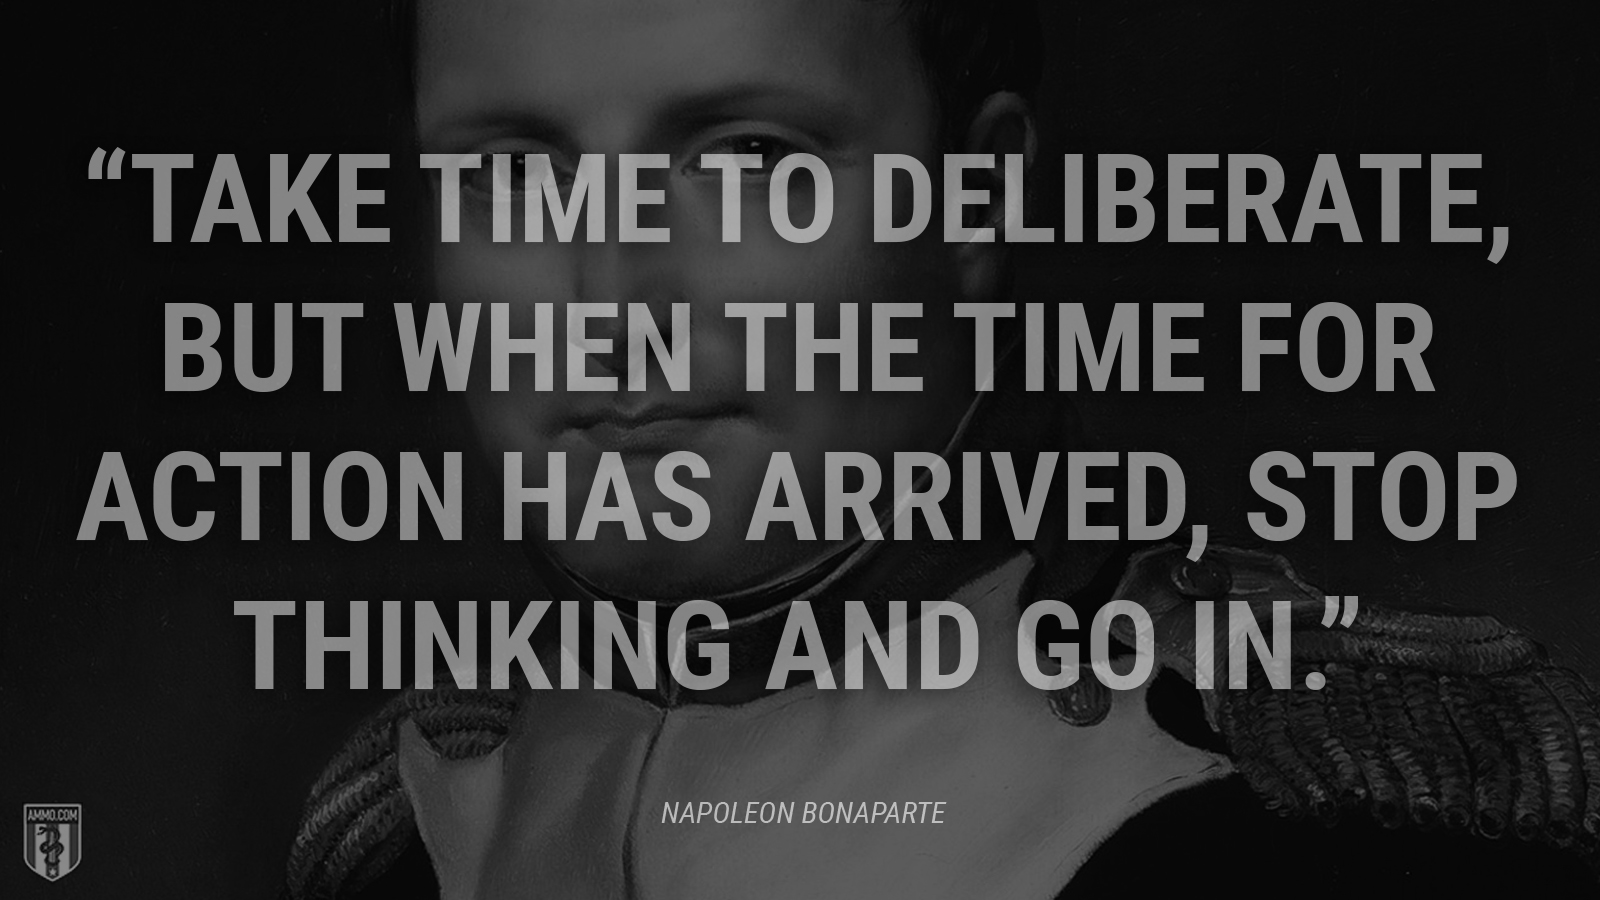 """Take time to deliberate, but when the time for action has arrived, stop thinking and go in."" - Napoleon Bonaparte"